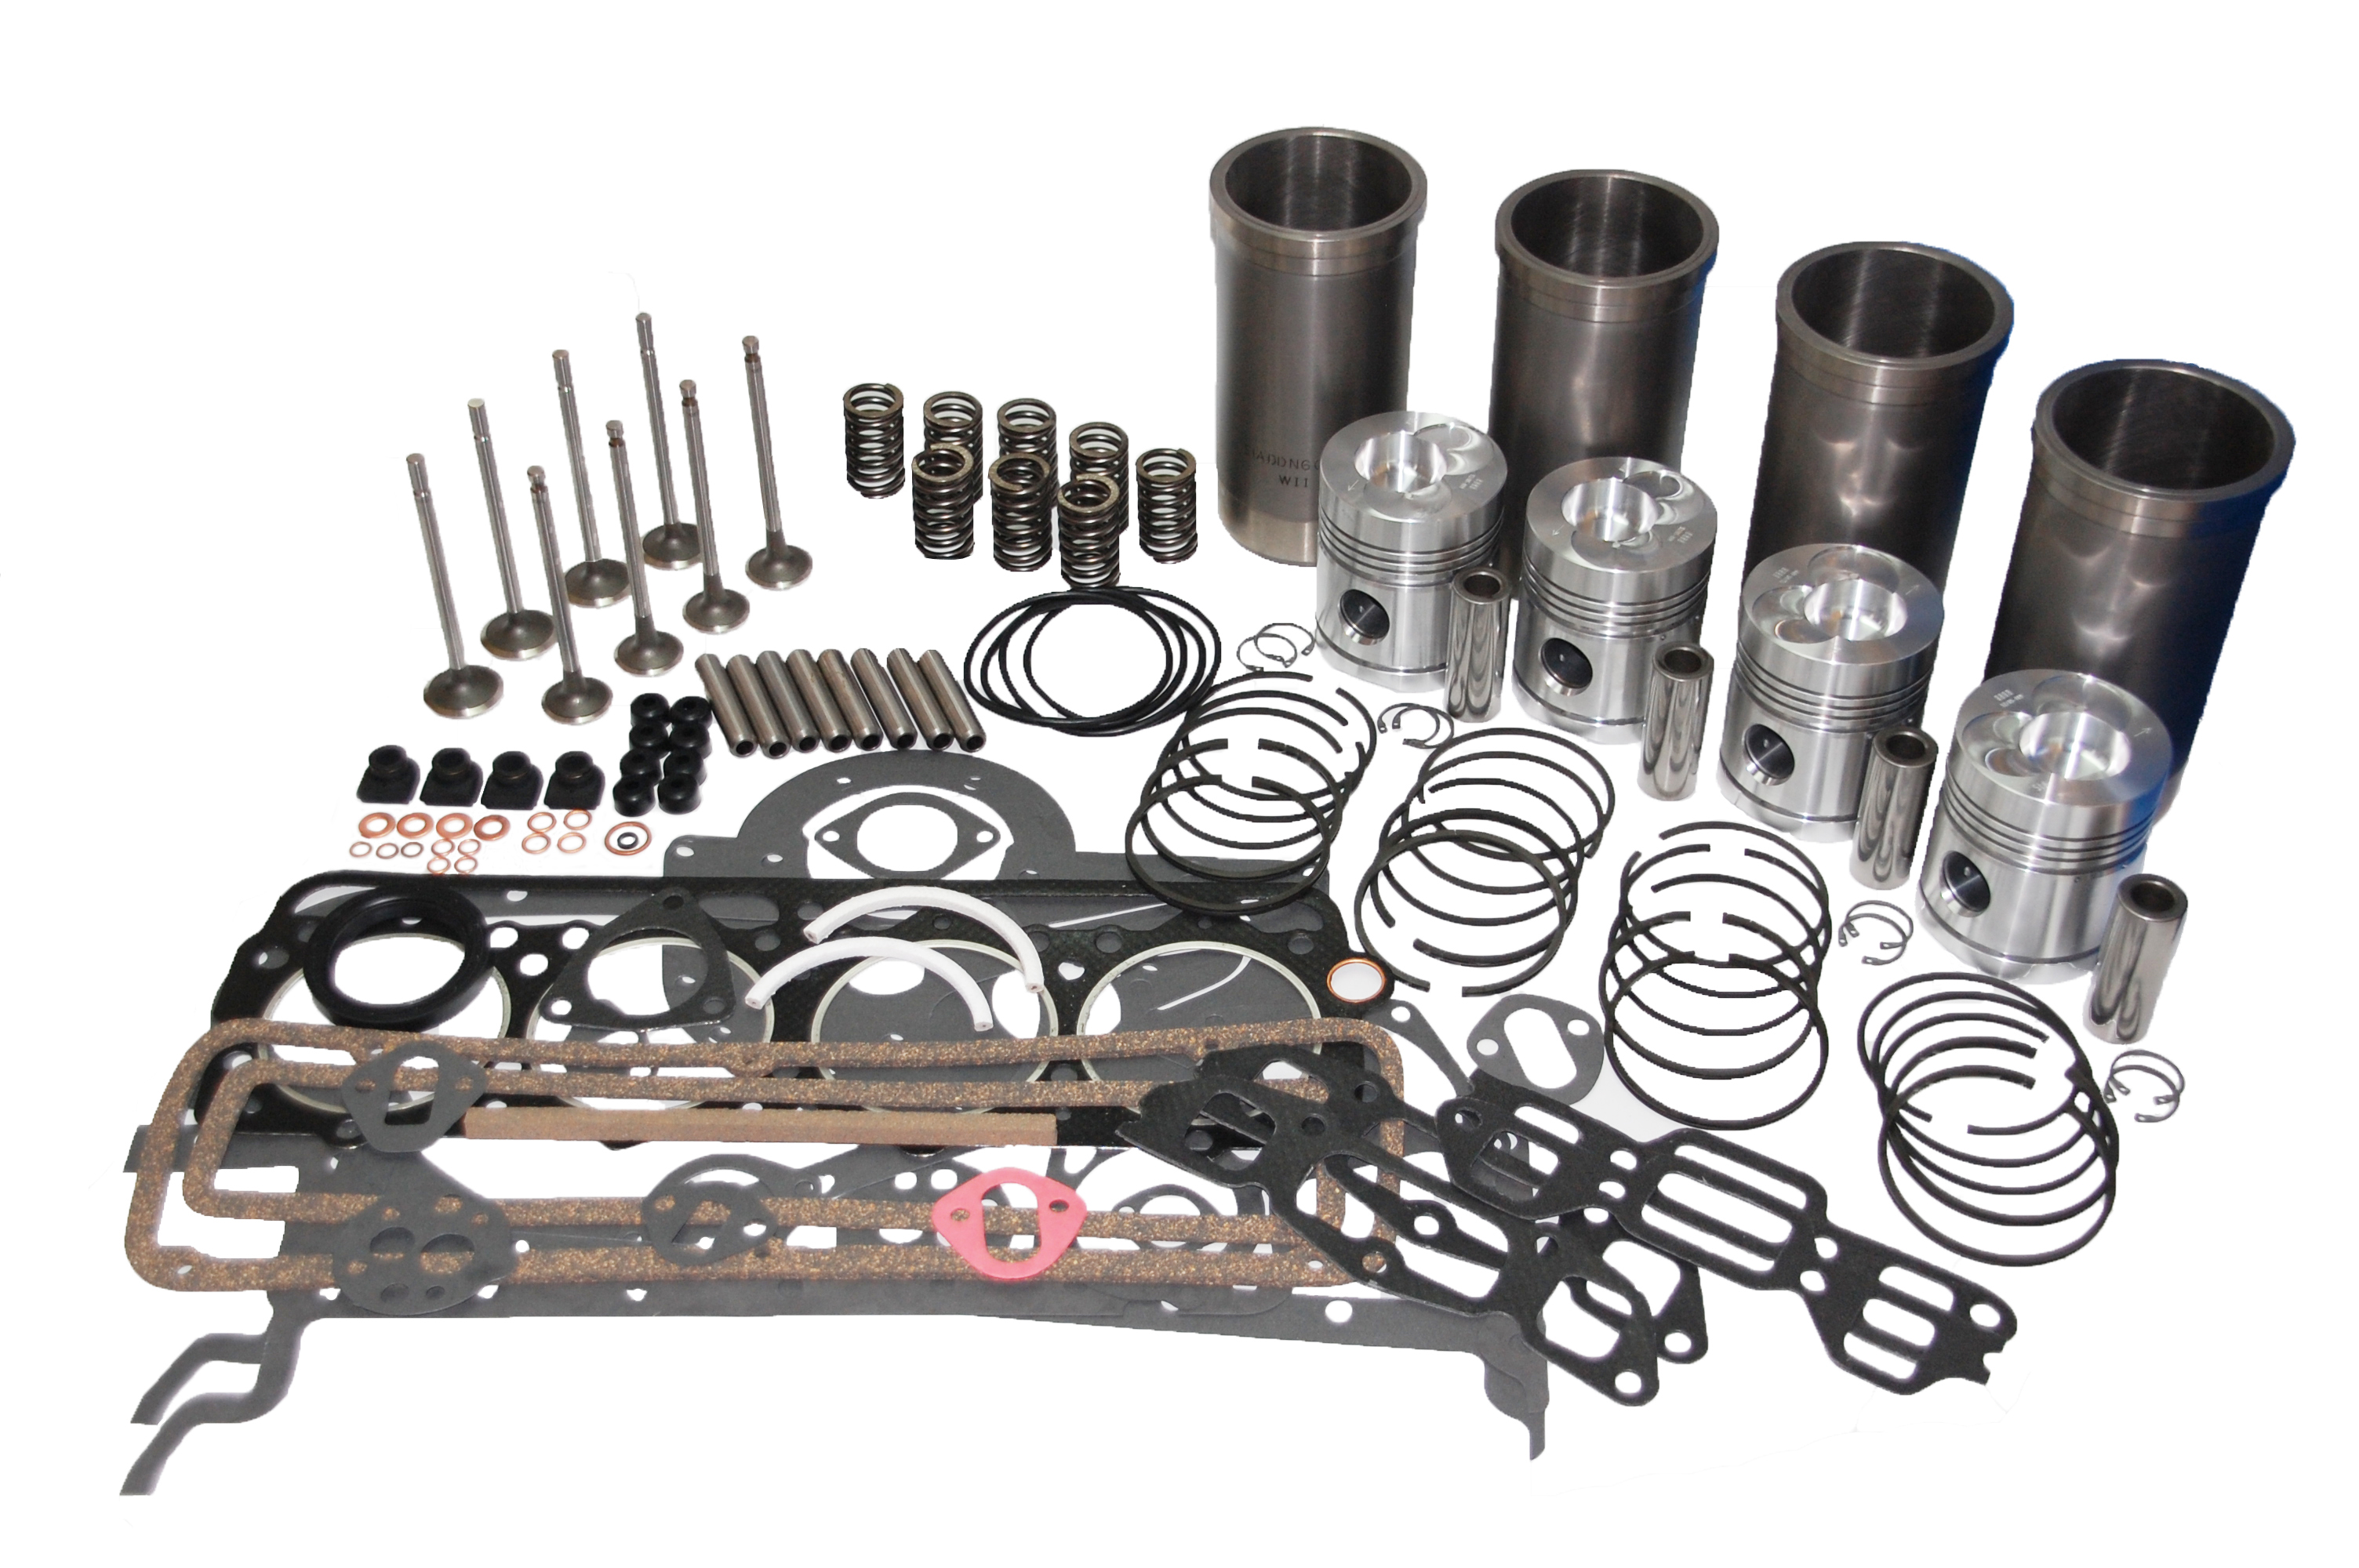 fordson tractor parts with Engine Overhaul Kit on Engine Connecting Rod further Fordson 1961 Dexta Tractor 8 likewise Fordson Dexta Super Dexta Wingfender Set 15853 P further Index furthermore Watch.